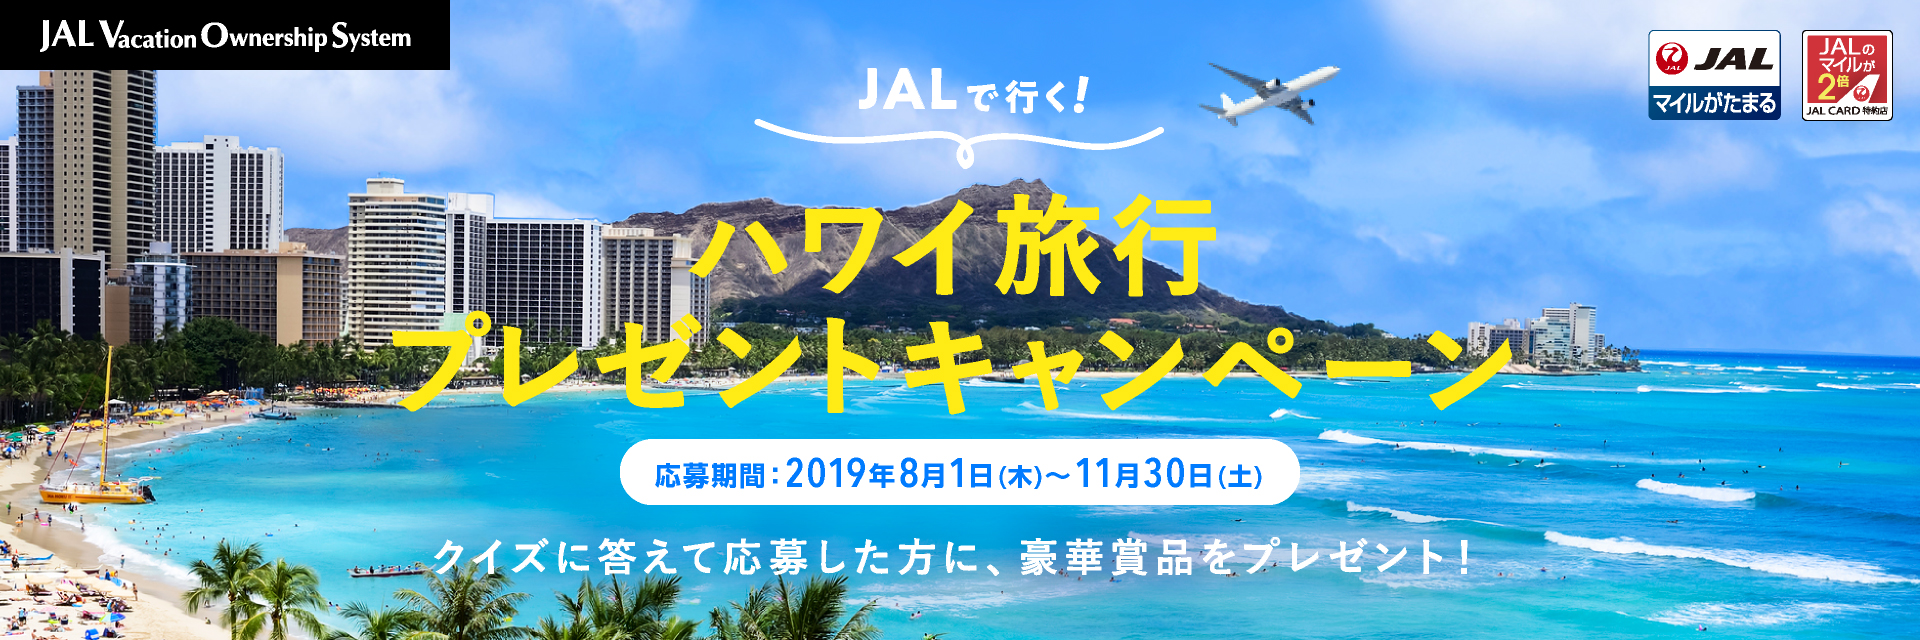 JAL Vacation Ownership System